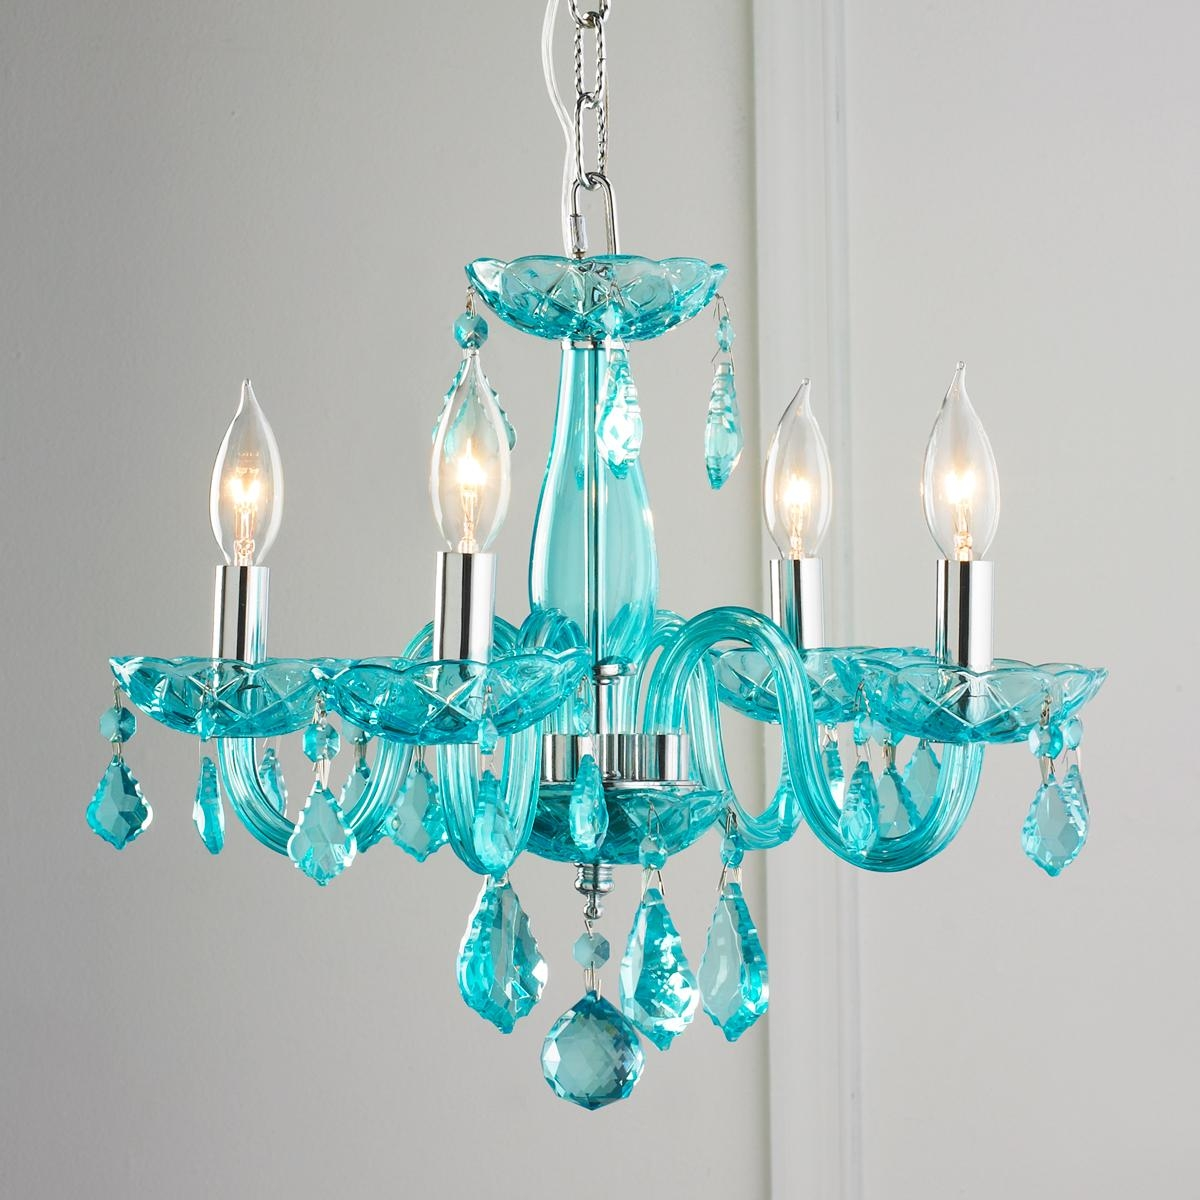 Color Crystal Mini Chandelier Powder Turquoise And Walk In Inside Small Glass Chandeliers (Image 4 of 15)